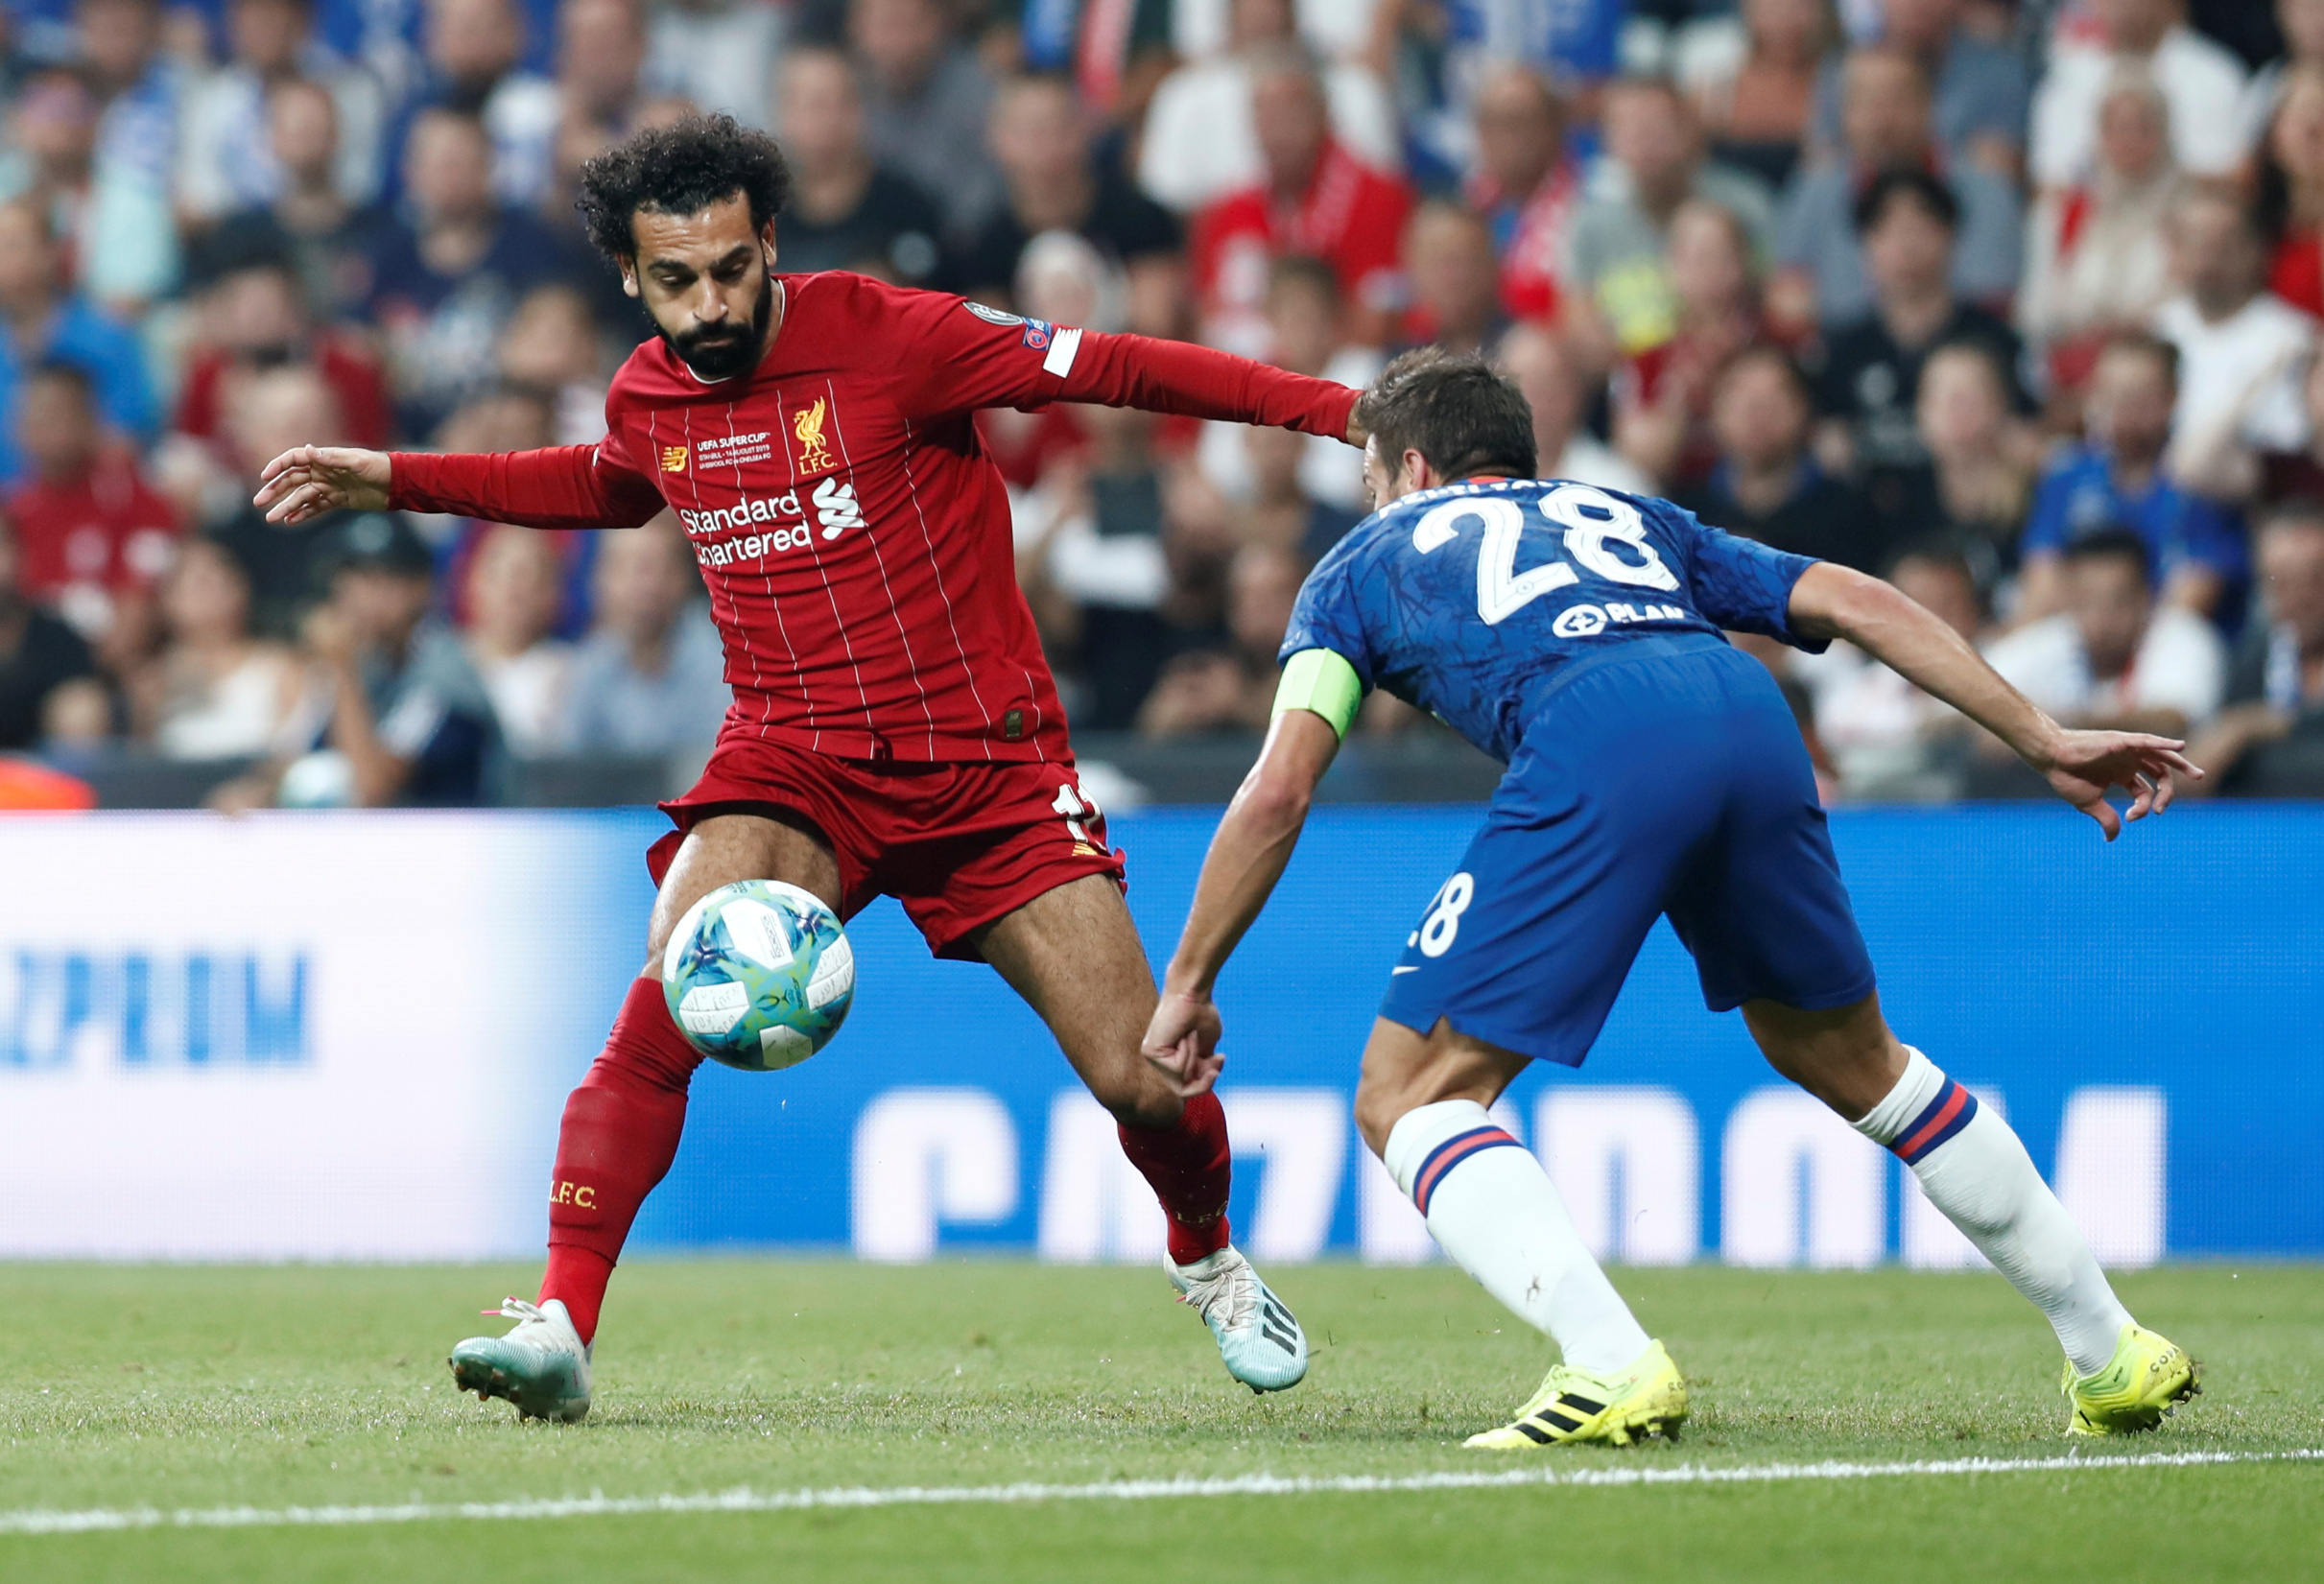 Soccer Football - UEFA Super Cup - Liverpool v Chelsea - Vodafone Arena, Istanbul, Turkey - August 14, 2019  Liverpool's Mohamed Salah in action with Chelsea's Cesar Azpilicueta   REUTERS/Murad Sezer - RC1851936190